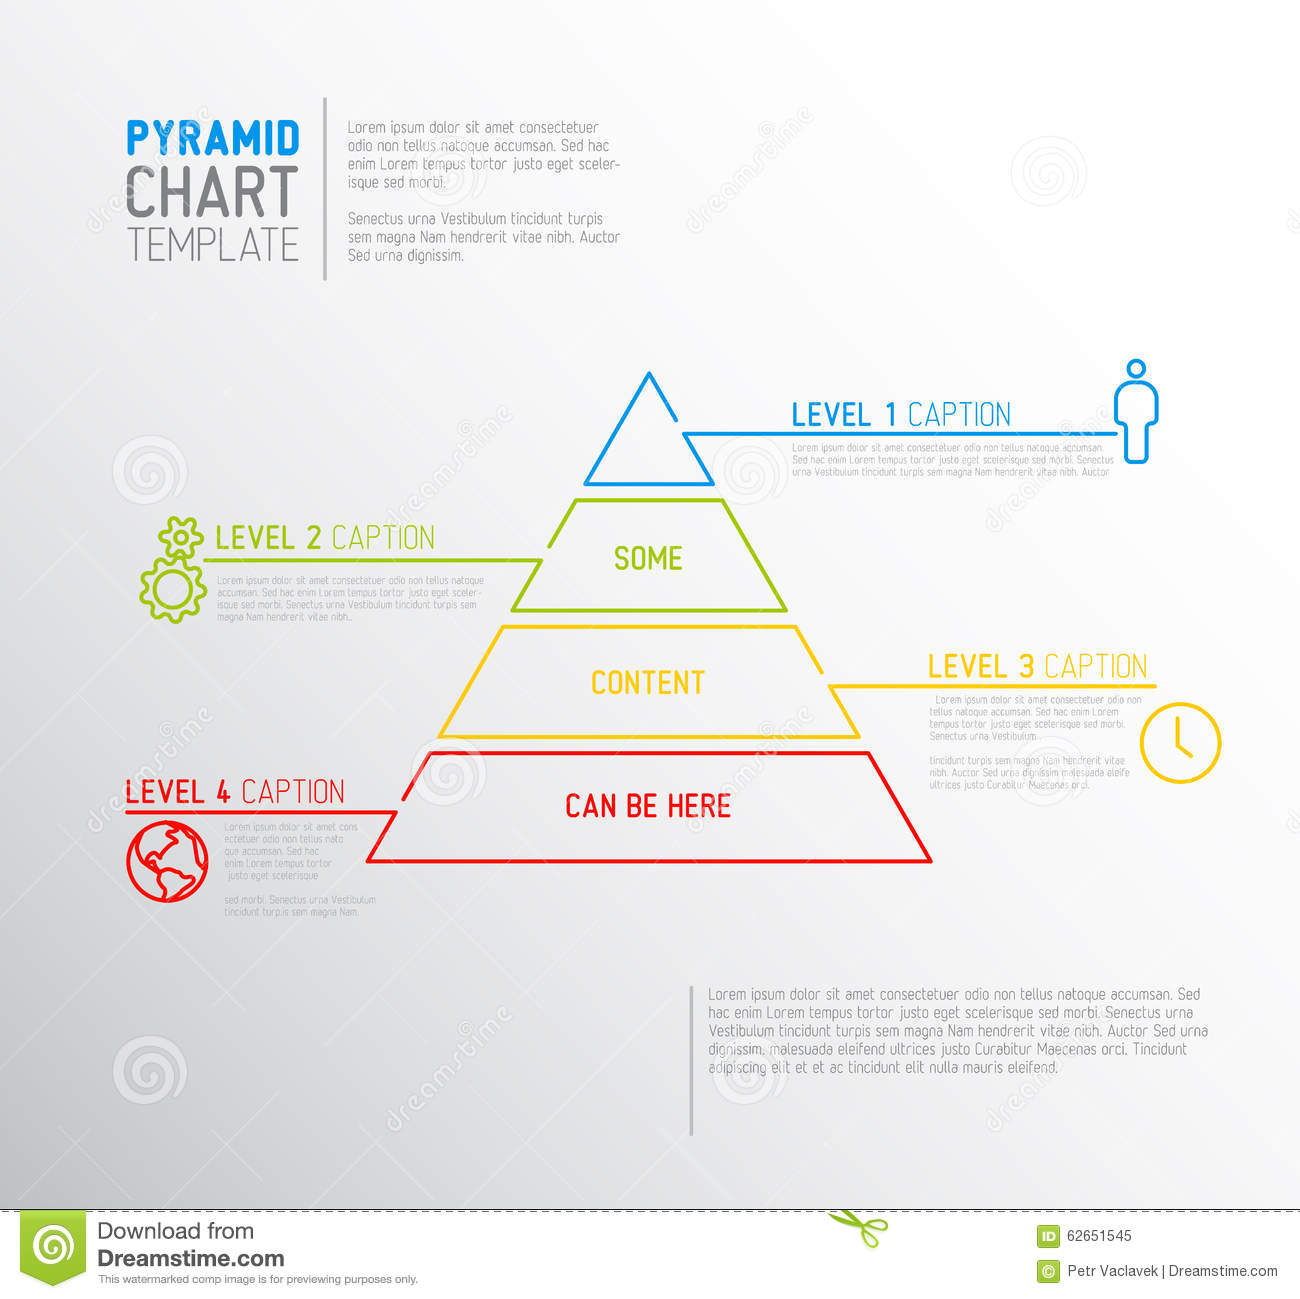 Remarkable 3D Pyramid Cone Diagram 7 Levels Split Separated Slides Diagrams Dandim Mohammedshrine Wiring Diagrams Dandimmohammedshrineorg